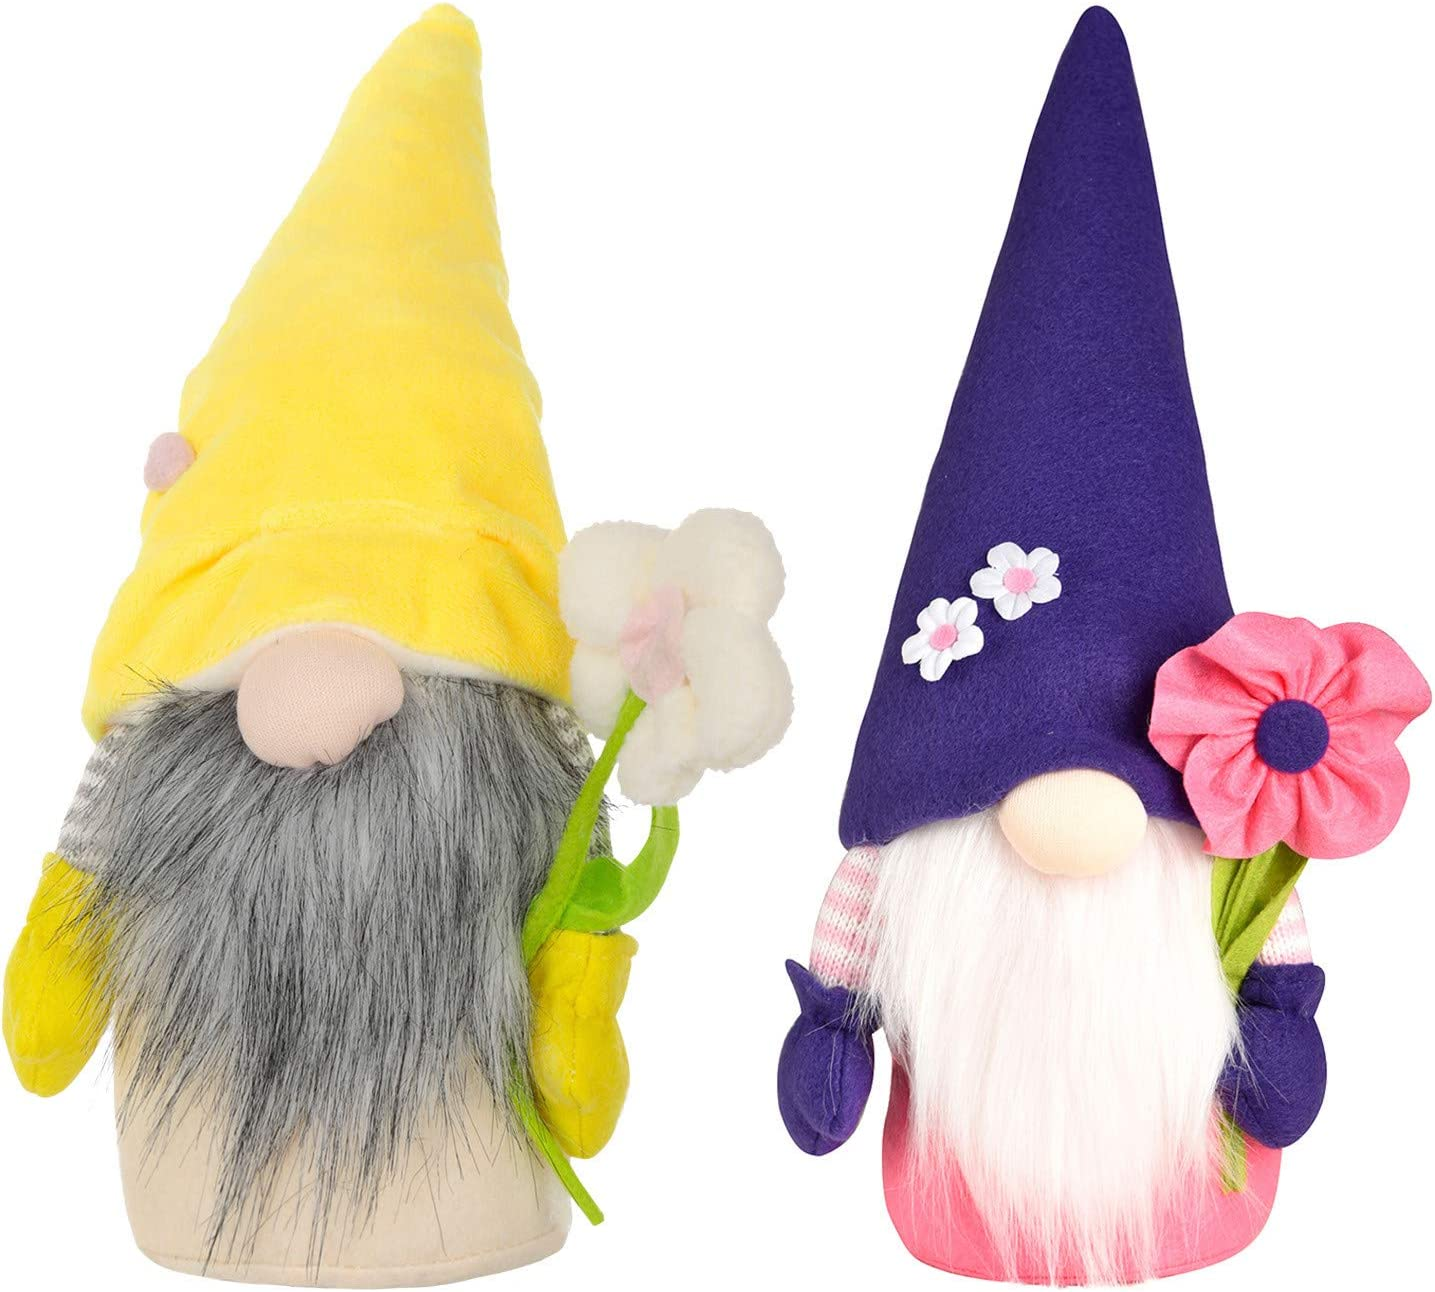 Fresno Manufacturer direct delivery Mall 2 PCS Spring Mothers Day Figurine Gnome Dwarf Household Dec Home